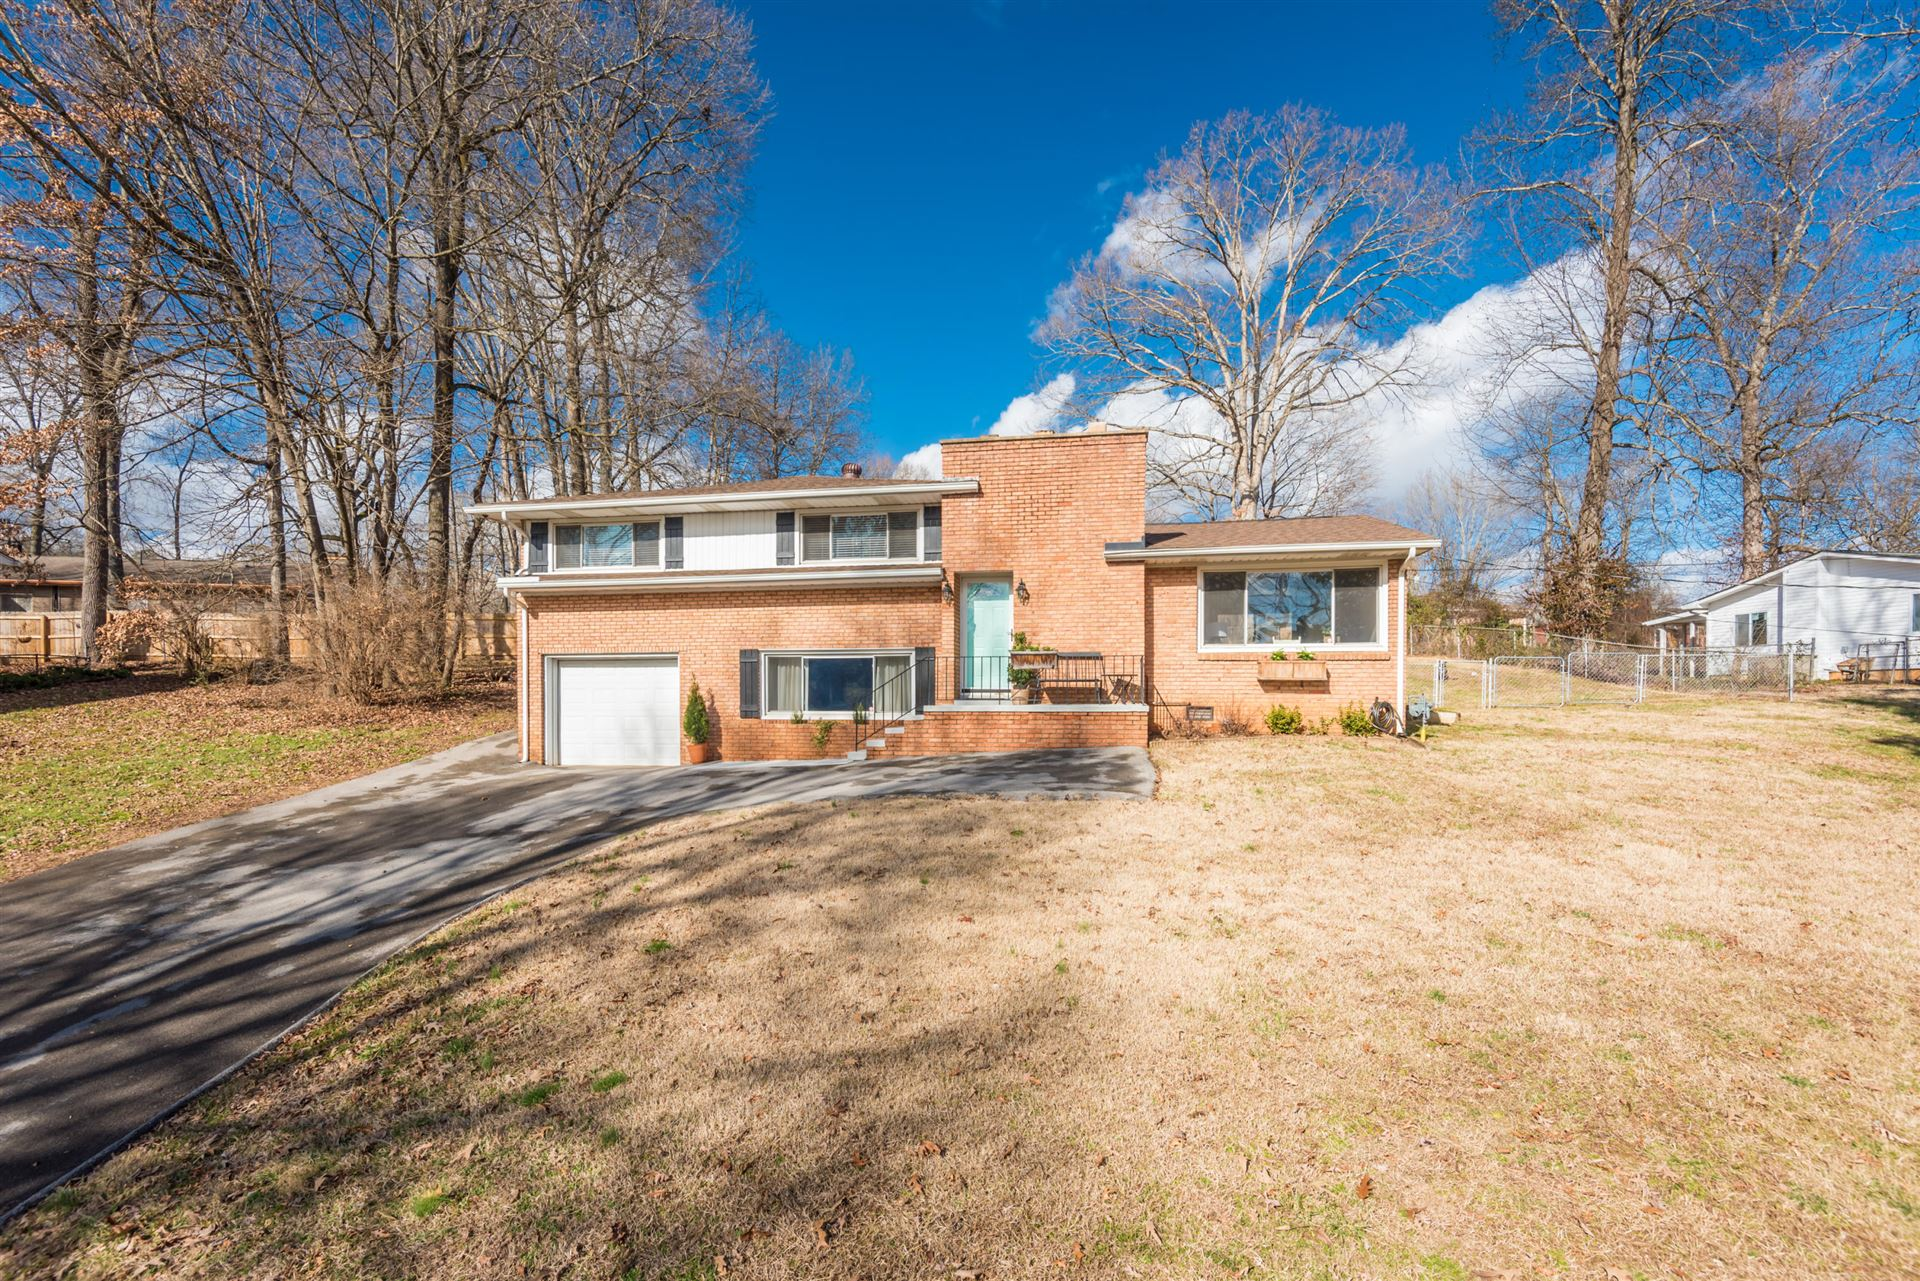 Photo of 1909 Wintergreen Drive, Knoxville, TN 37912 (MLS # 1140187)